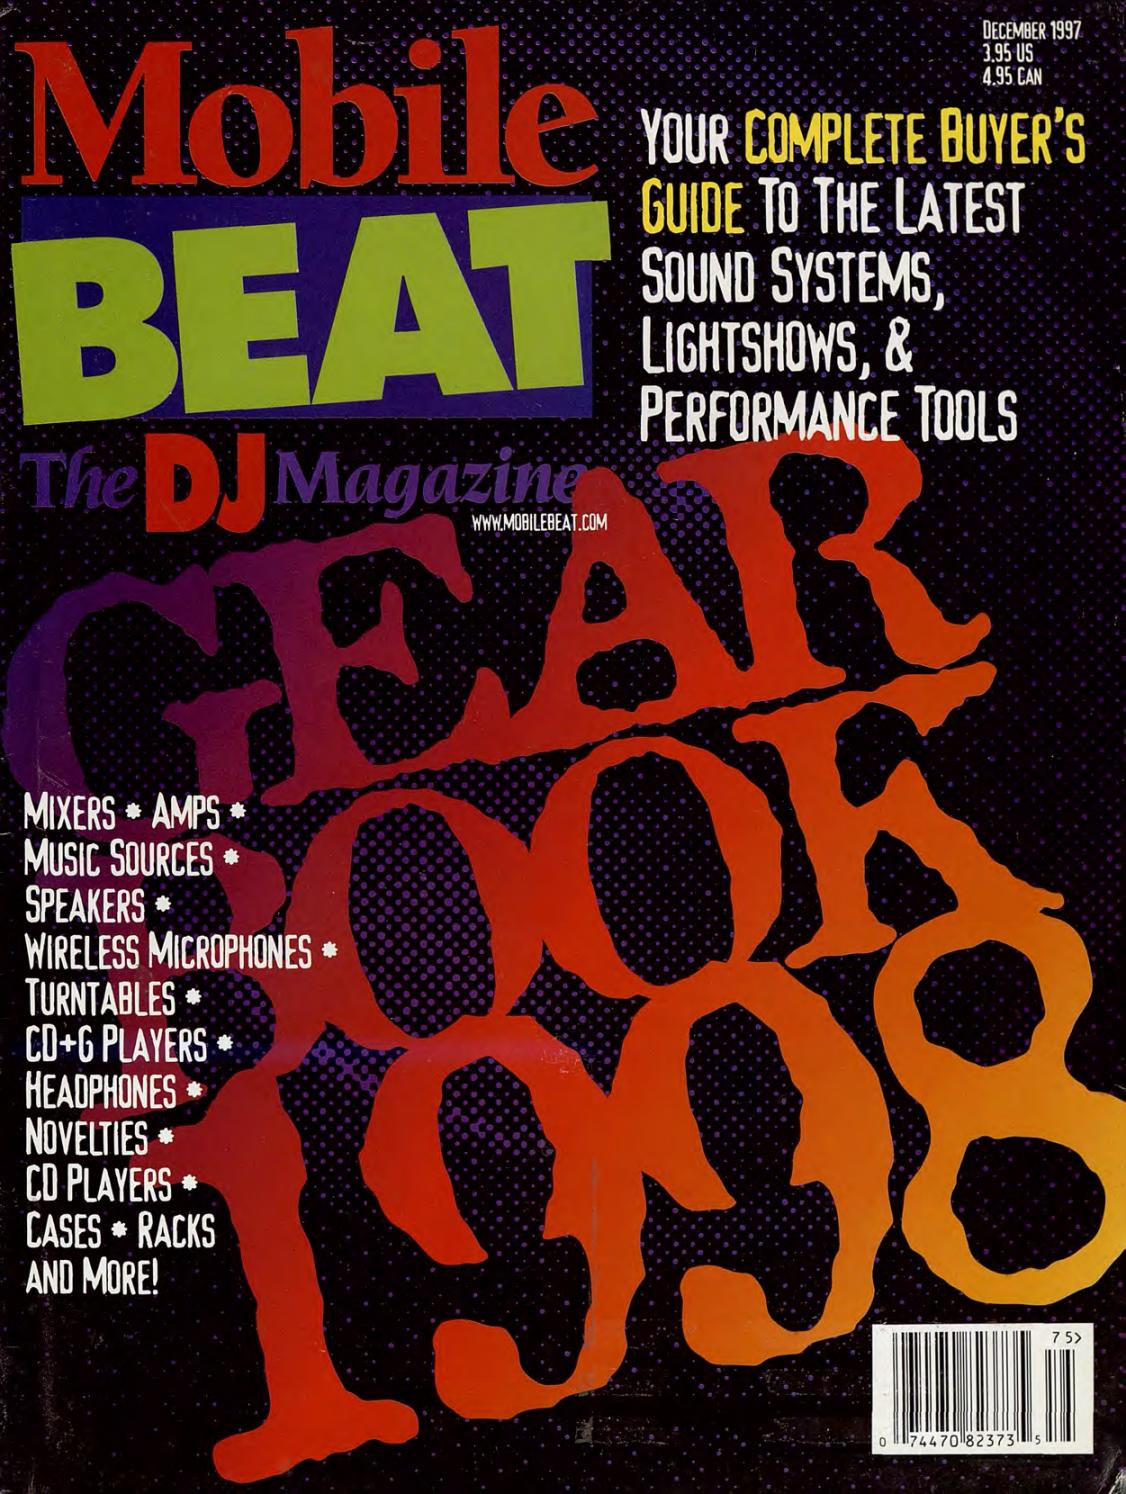 Issue 042 - December 1997 - Your Complete Buyer's Guide by ... on